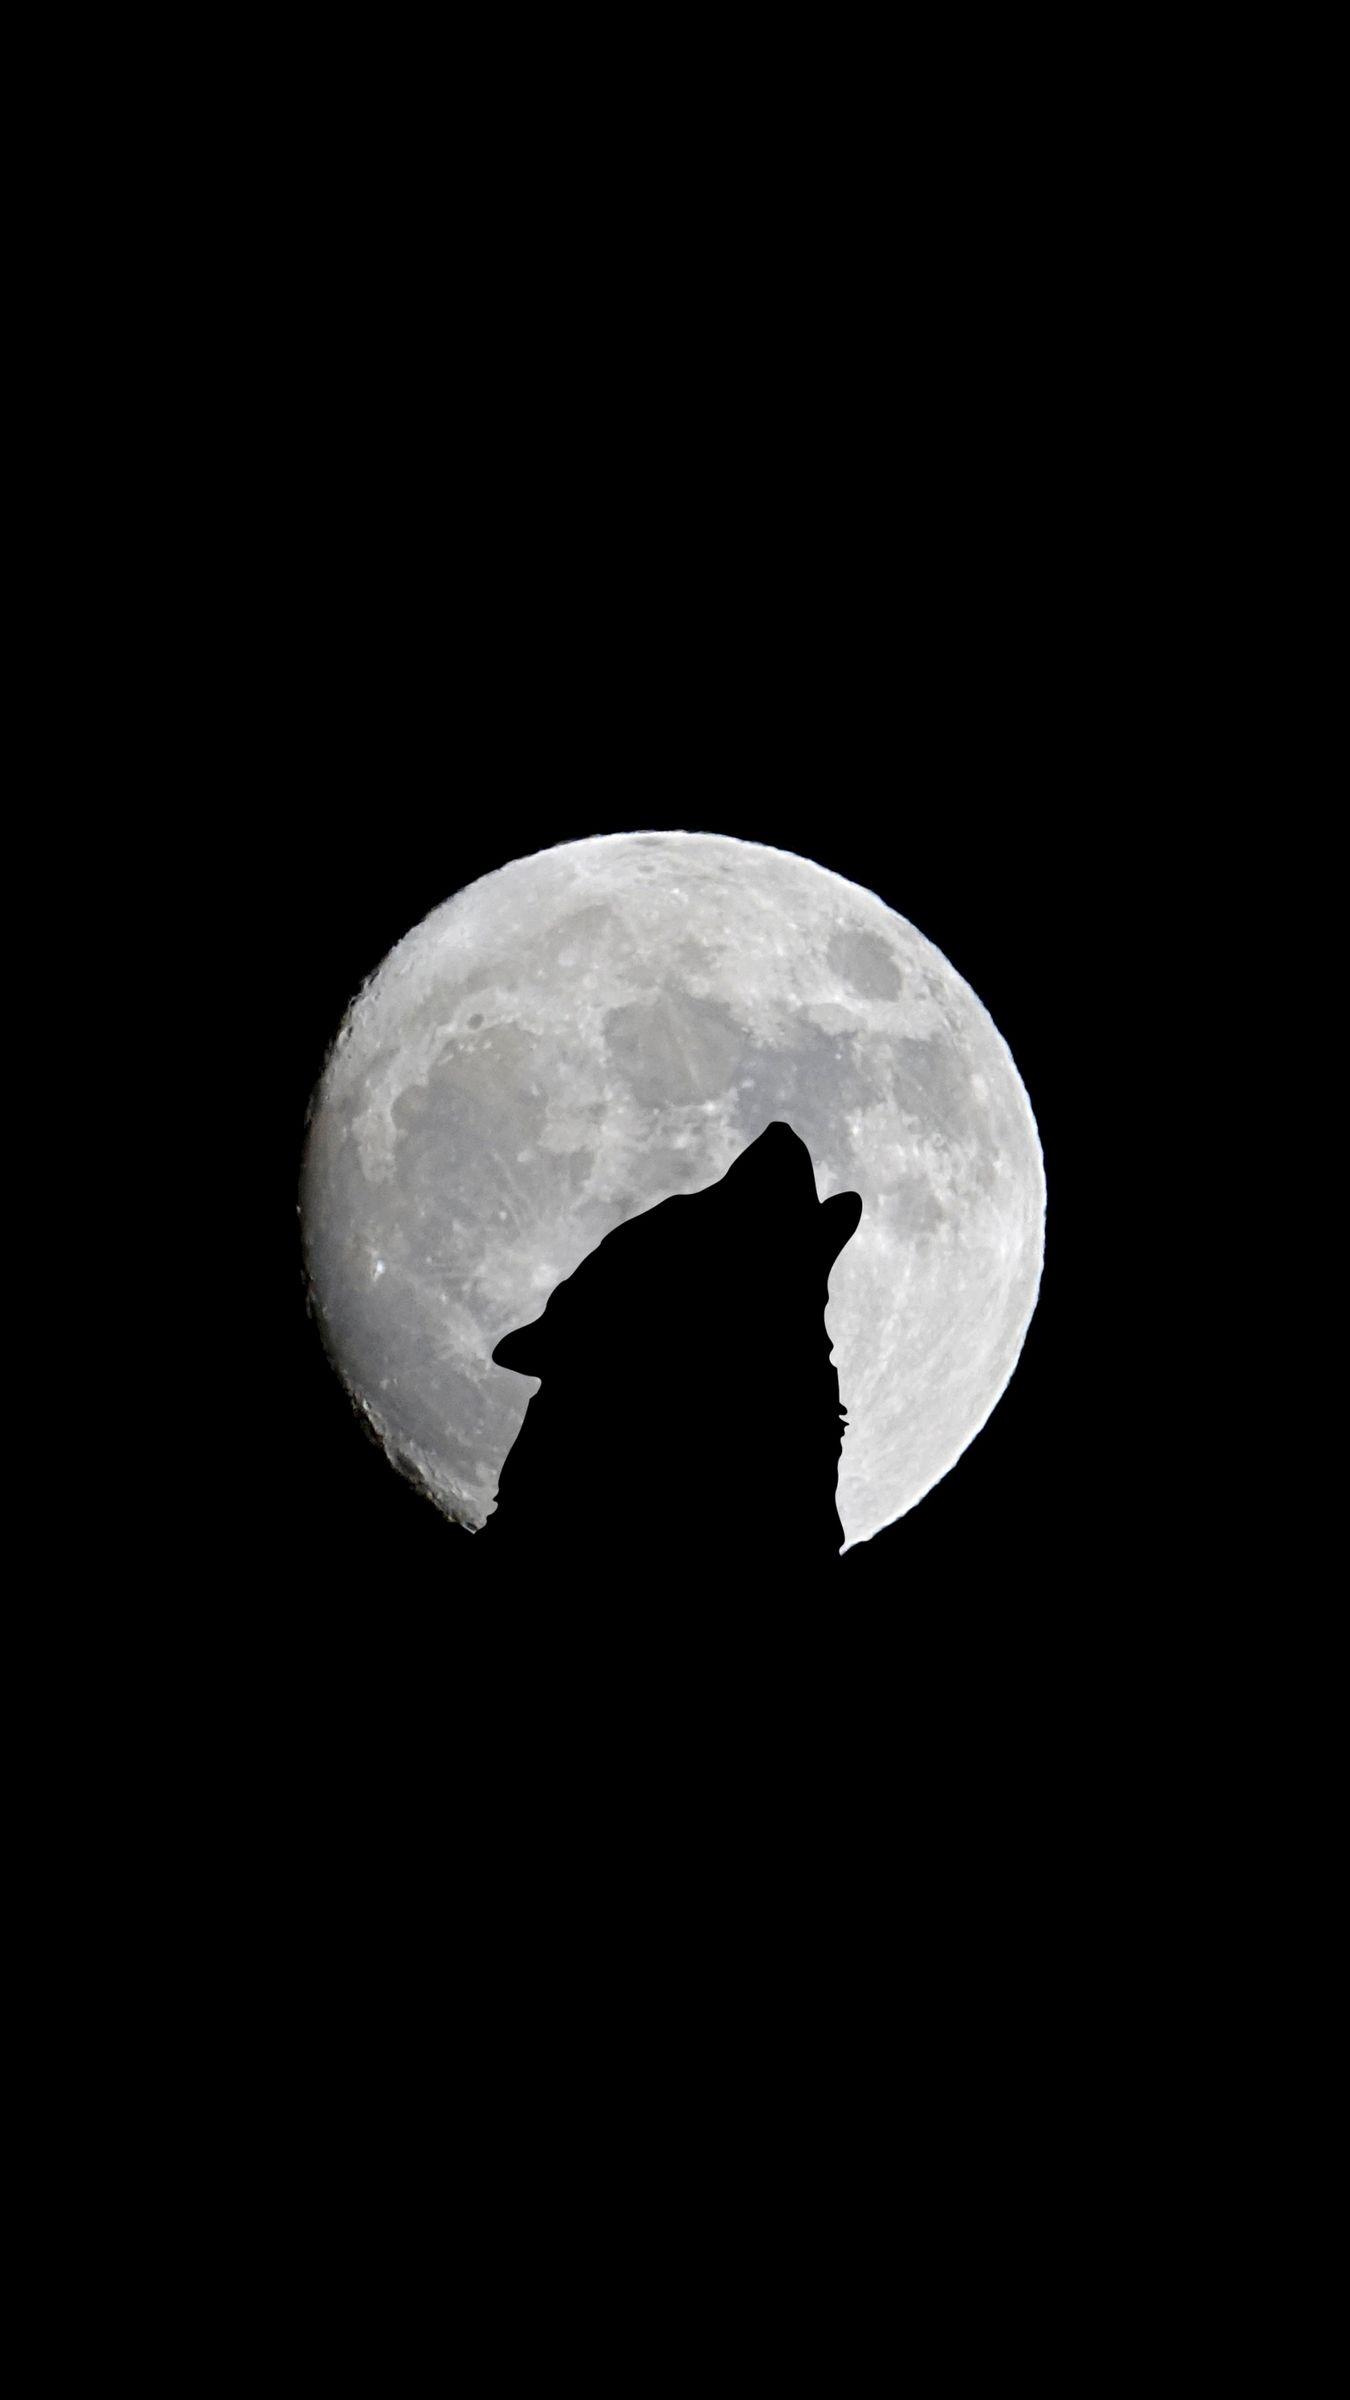 Iphone Wallpapers Moon Wolf